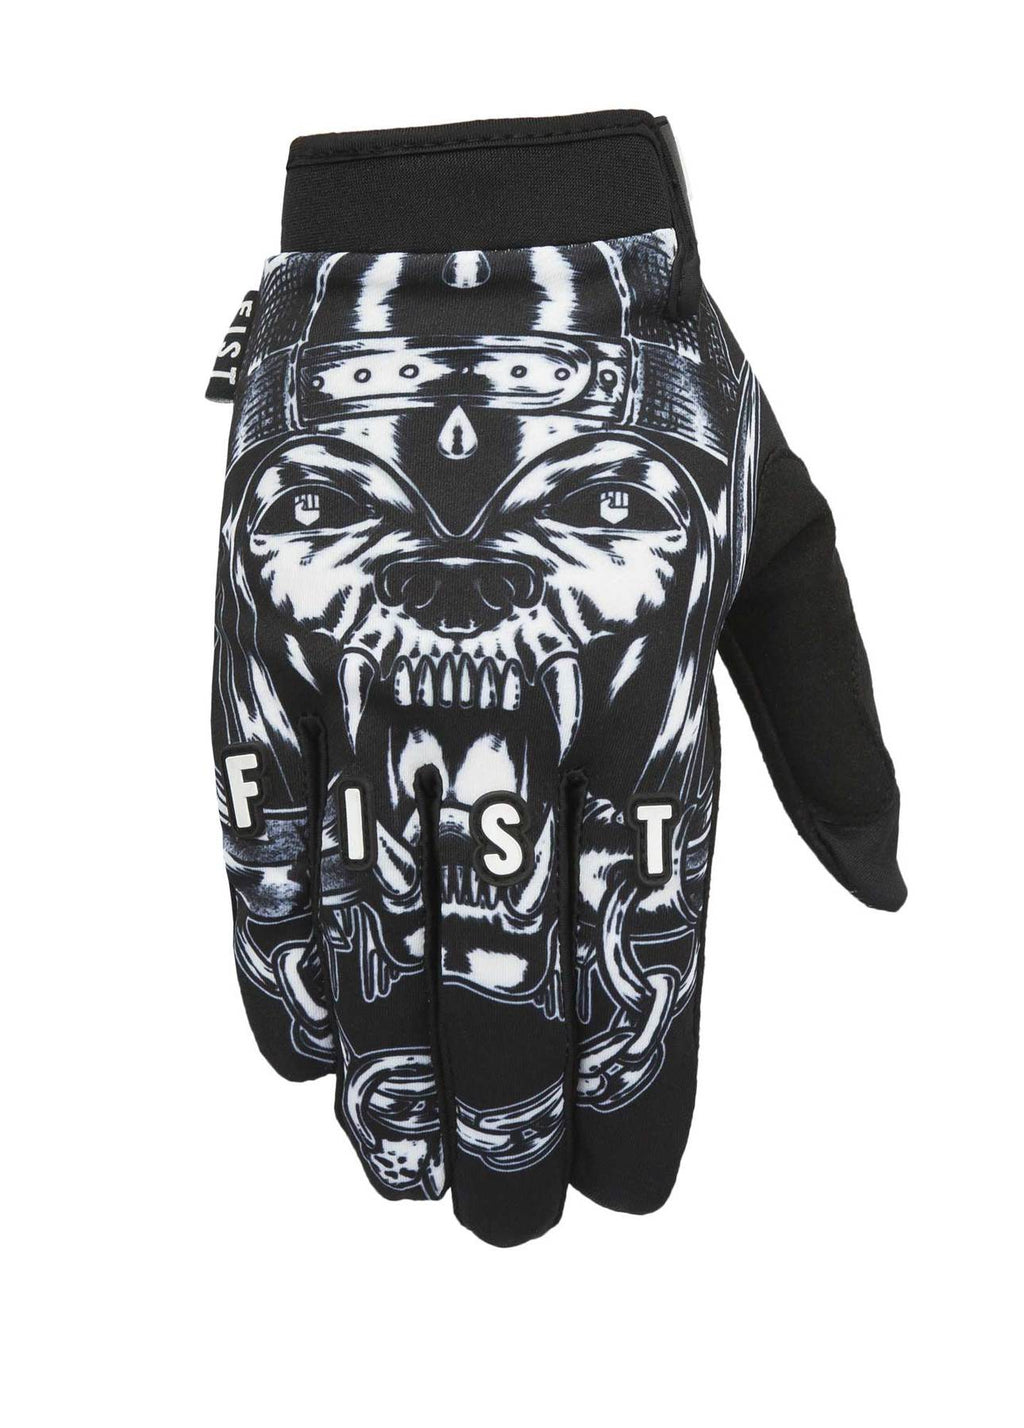 Fist Motorfist Handschuhe / Gloves